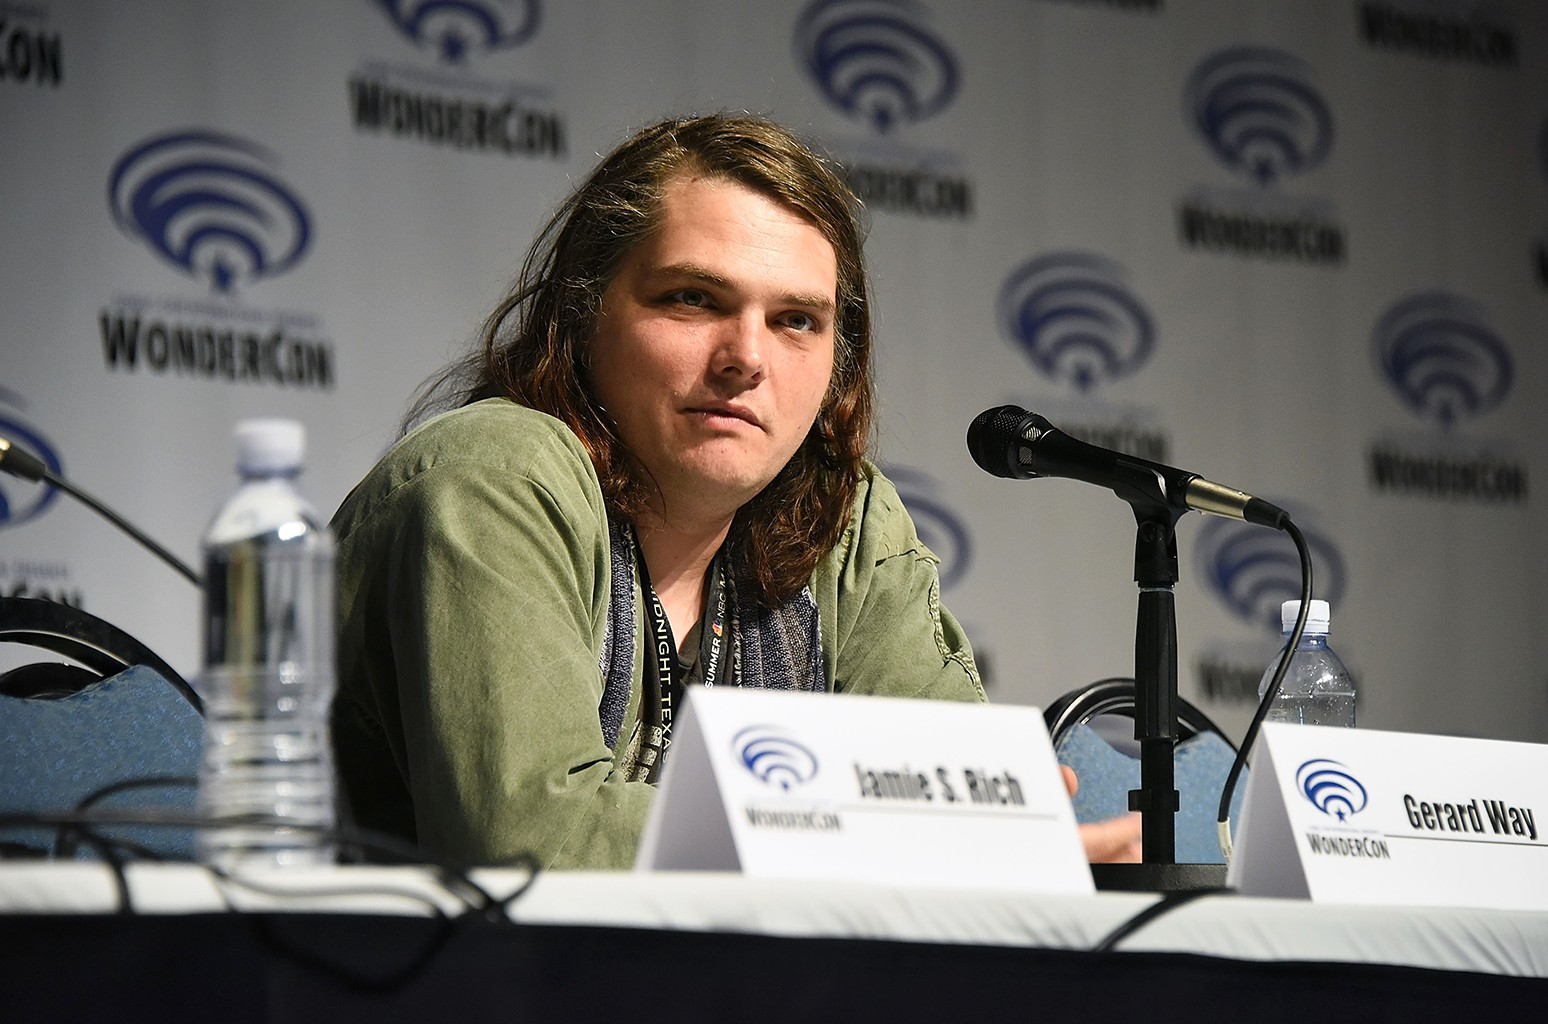 Gerard Way attends day two of WonderCon 2017 at Anaheim Convention Center on April 1, 2017 in Anaheim, Calif.